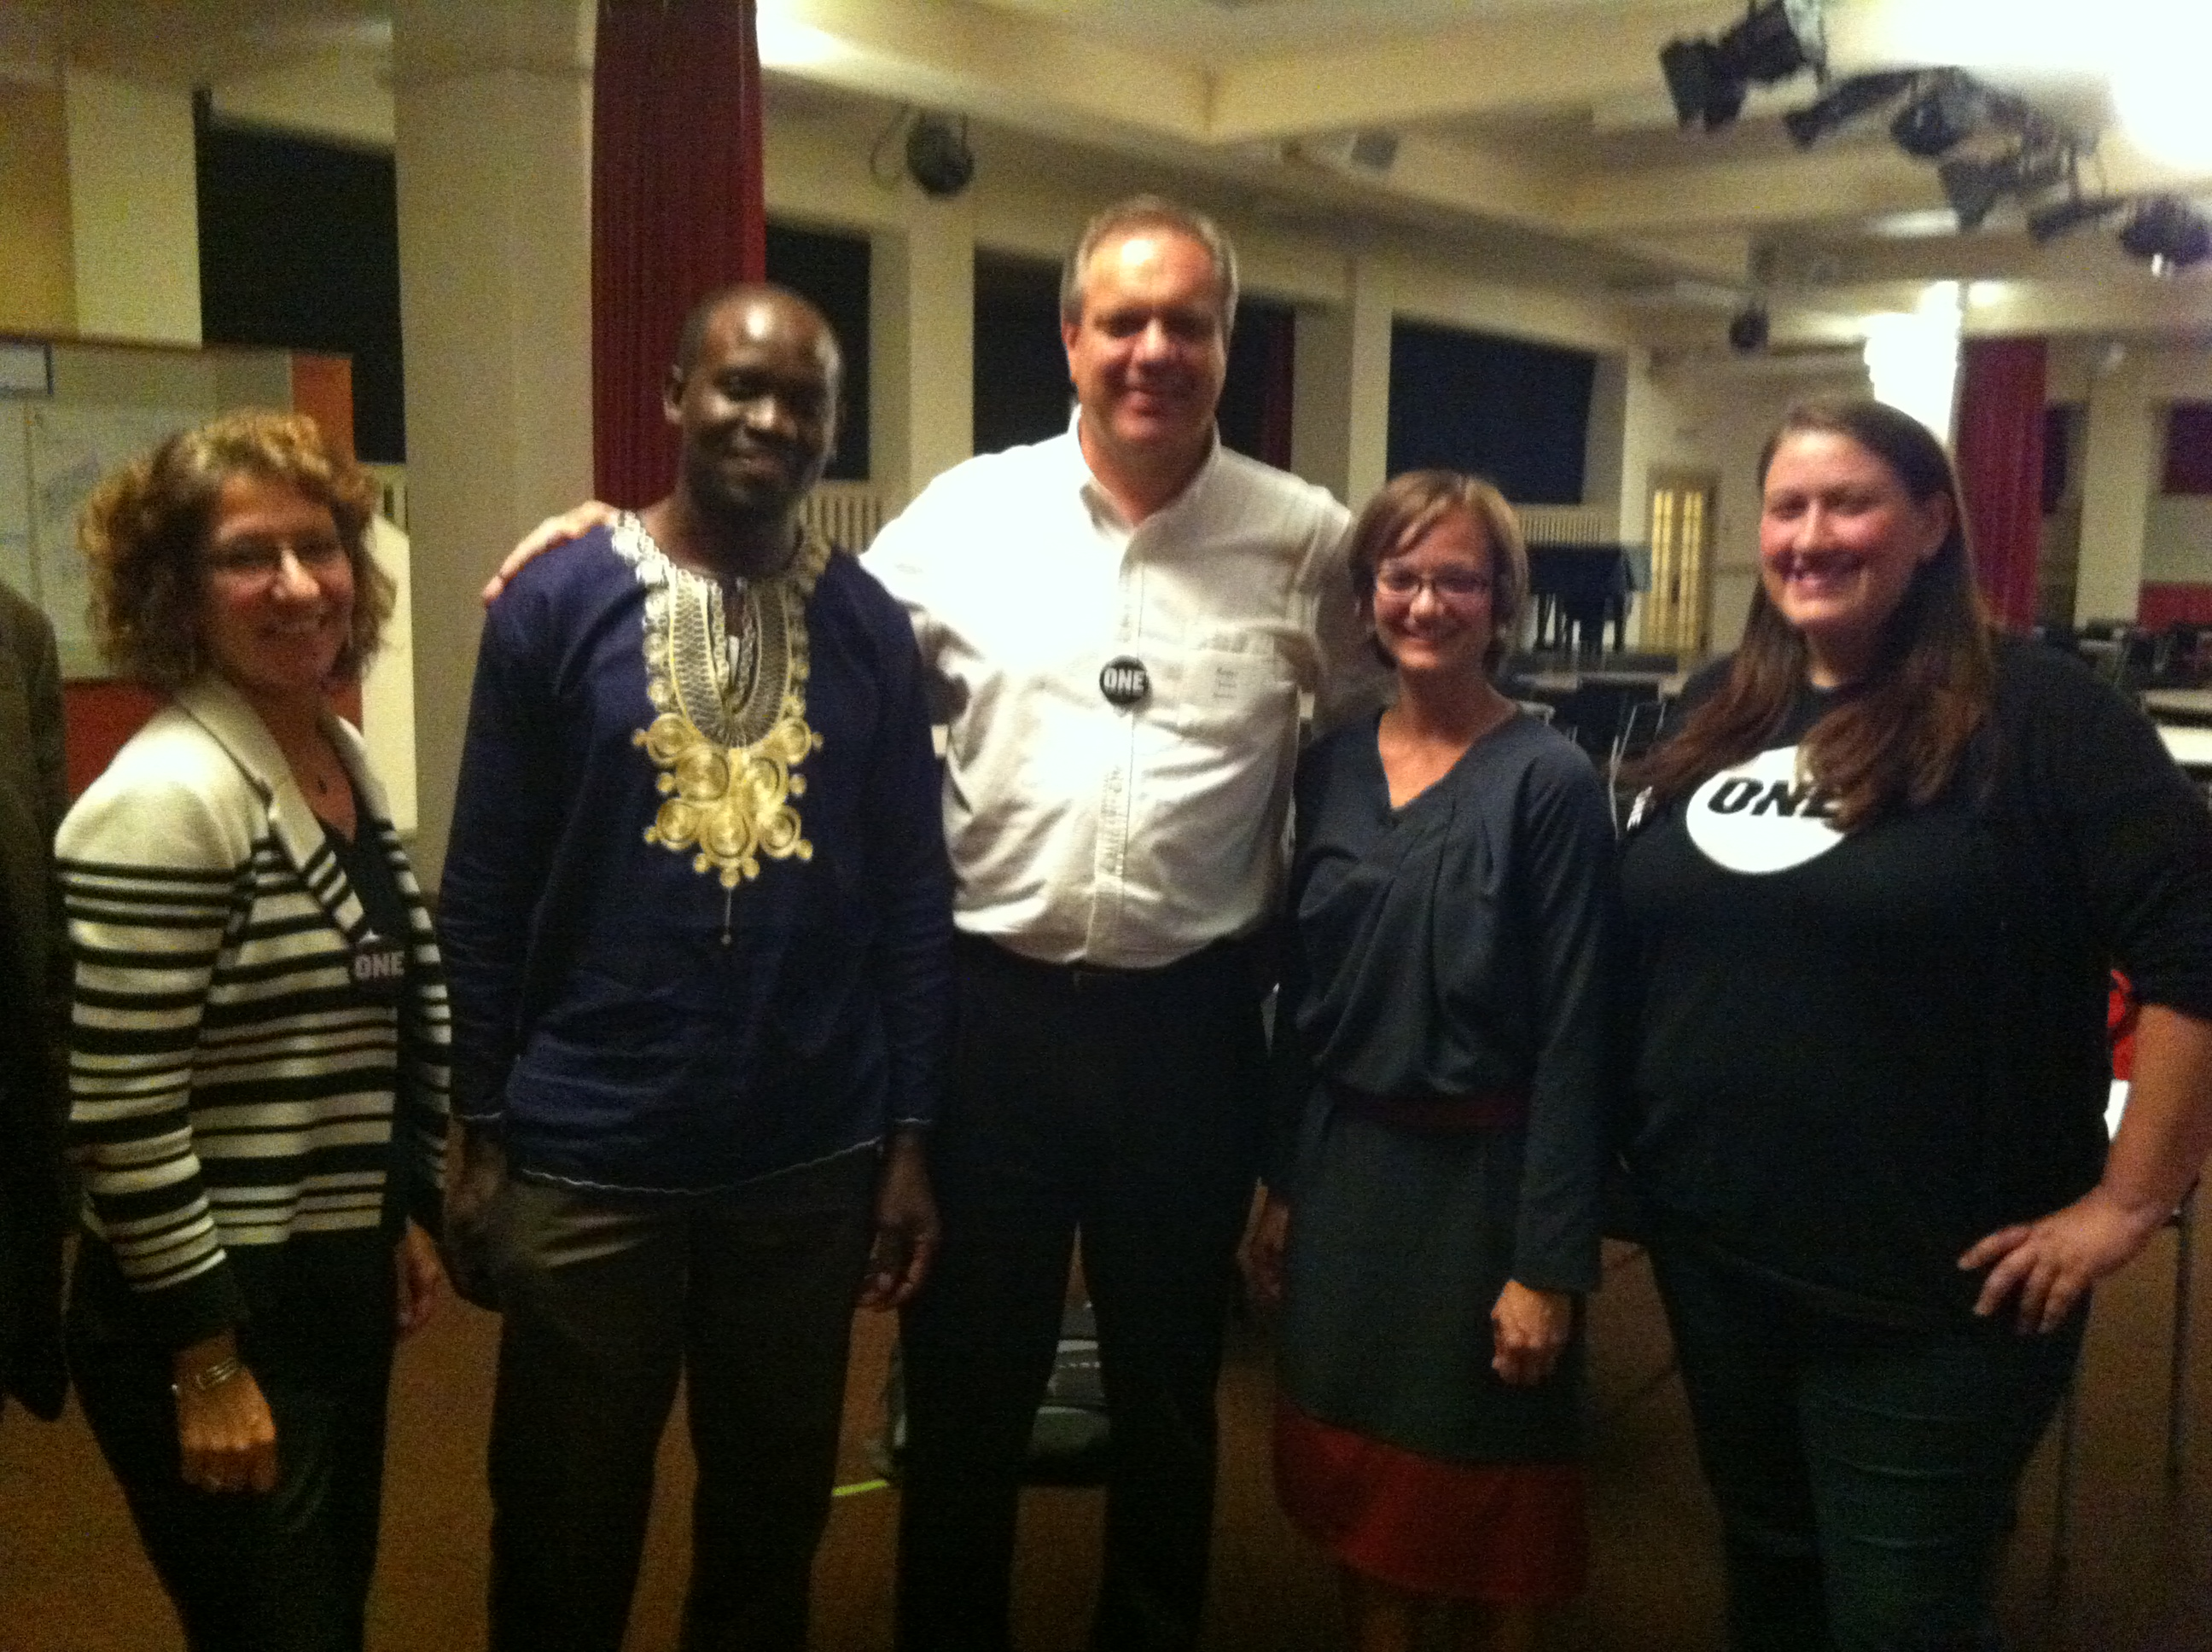 ONE members with Roger Thurow, Mary Kay Gugerty, Stephanie Hanson and Tony Machacha